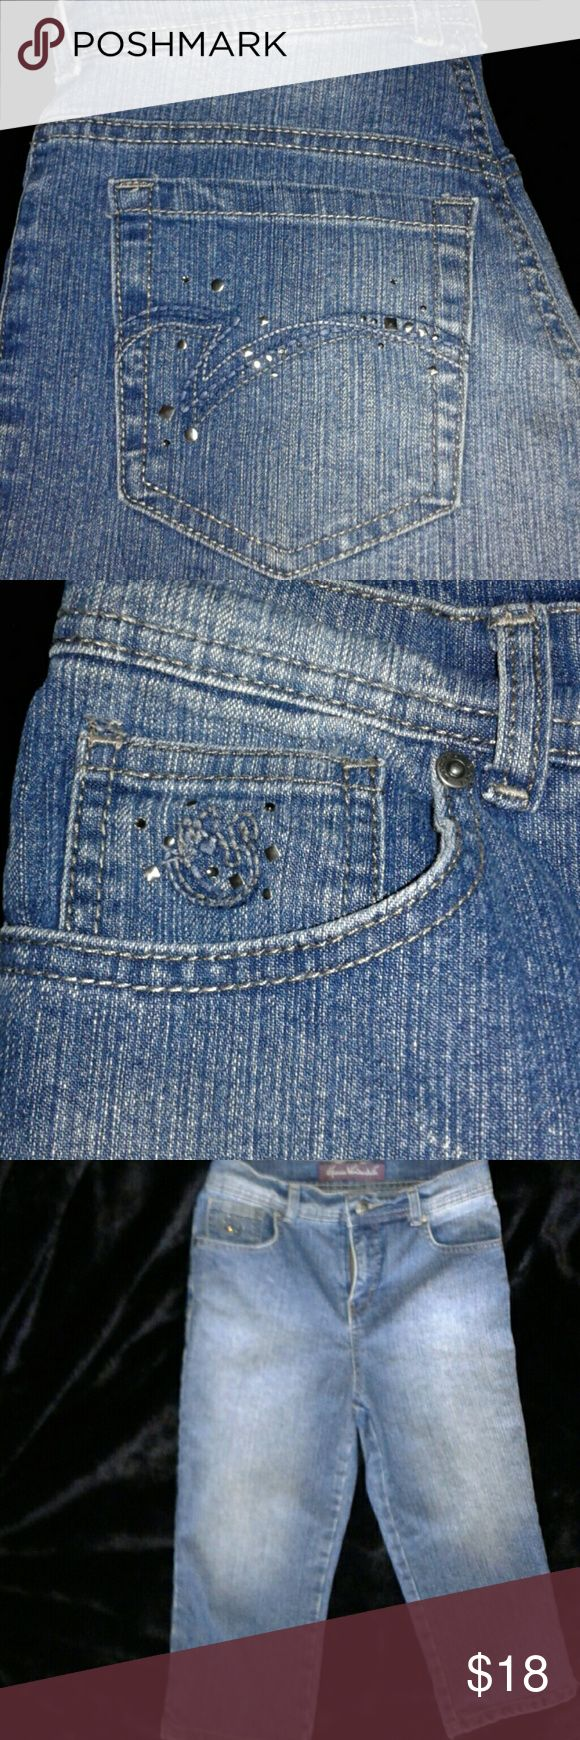 ♡Gloria Vanderbilt Capri♡ W/ Embellished Pockets These are a beautiful pair of Capri style denim jeans by Gloria Vanderbilt.  They have some added bling style on both back pockets as well as the right front pocket.  The embellishments pop out enough to make them noticeable but also not over powering.  They have a factory faded wash on both front and back in a medium blue.   These are capris so they don't go all the way down to the ankle, they come a bit below my knee cap, perfect for spring…